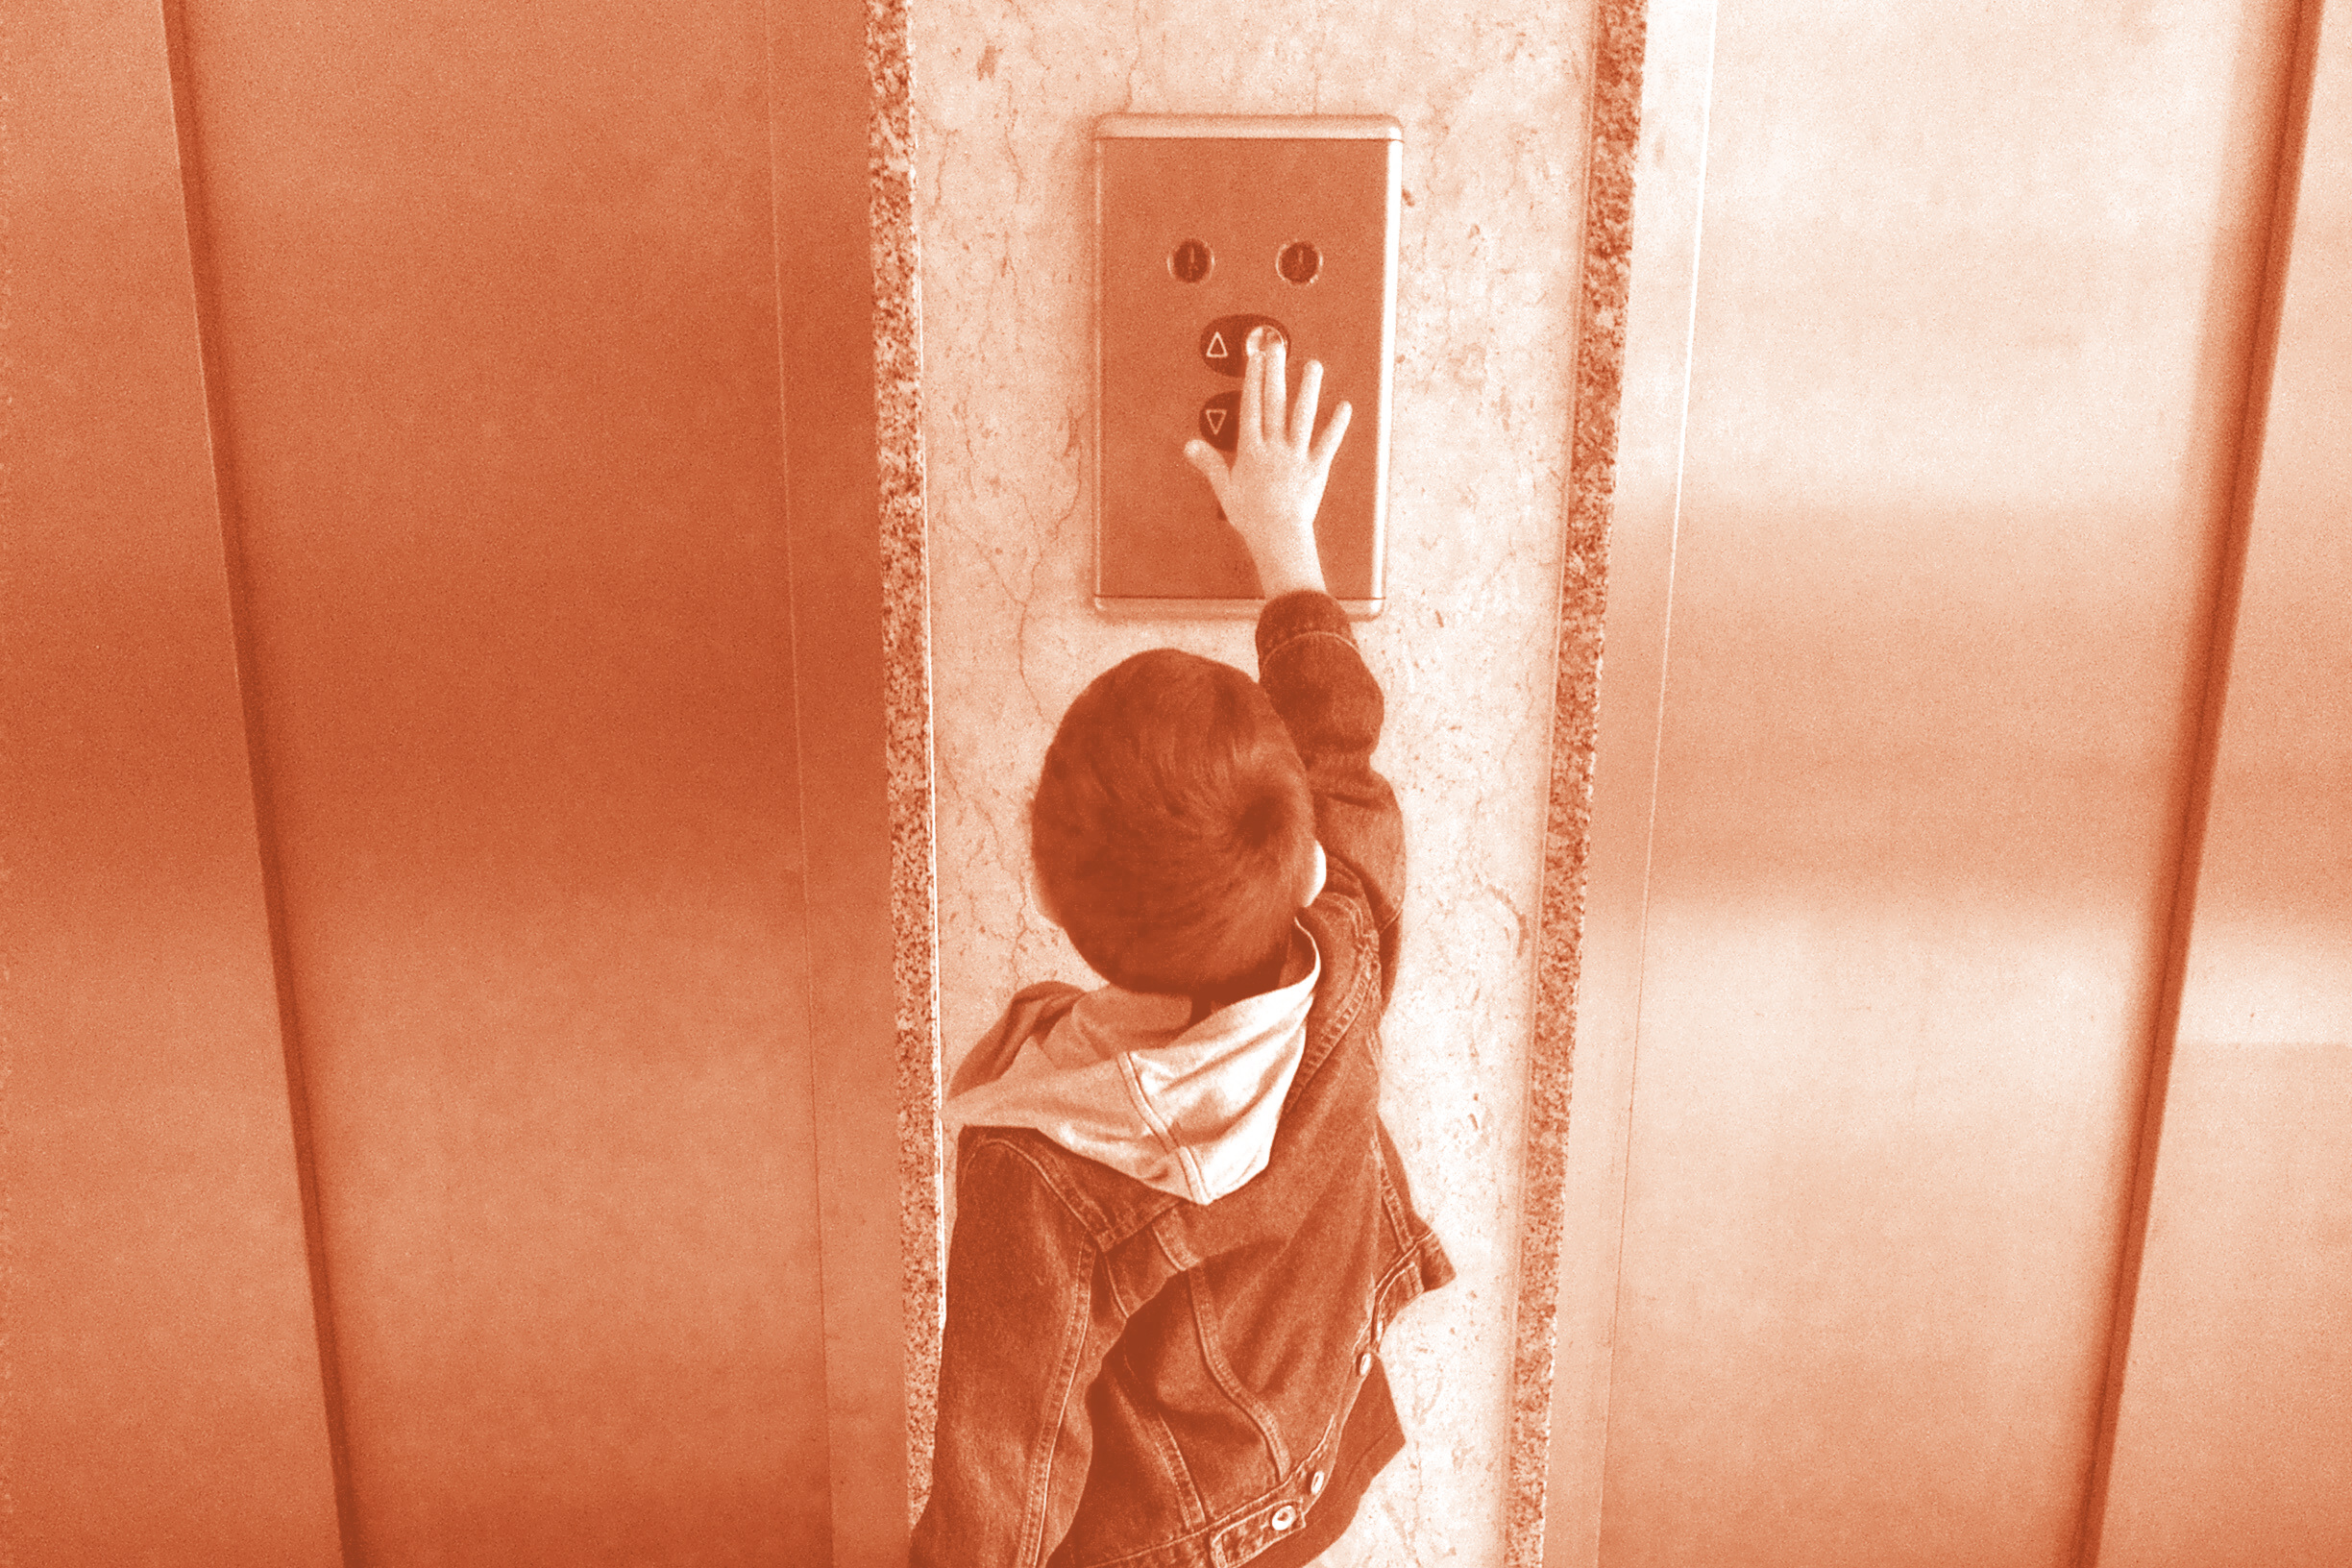 little boy pushing elevator button